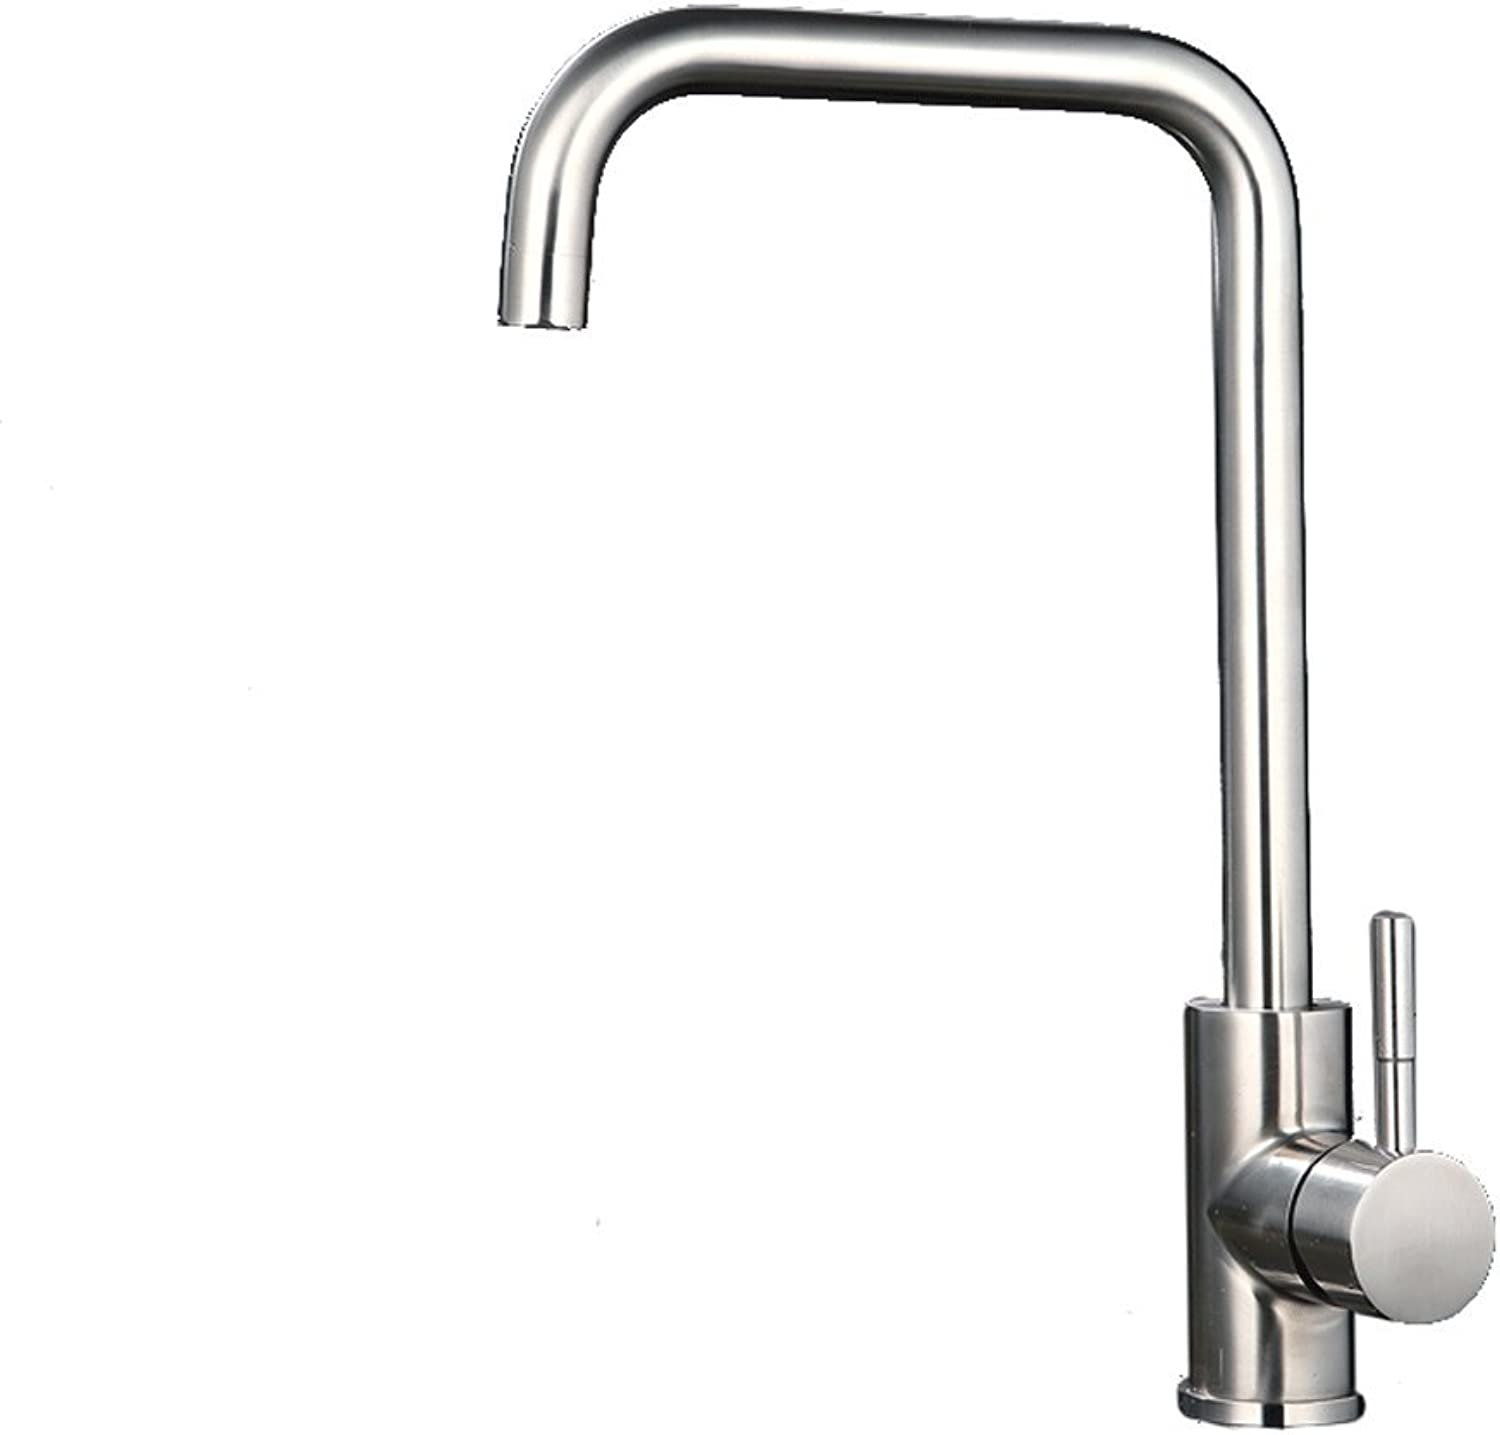 Lead-free 304 stainless steel faucet Kitchen hot and cold water faucet Sink basin sink faucet Universal redating faucet (color   7)